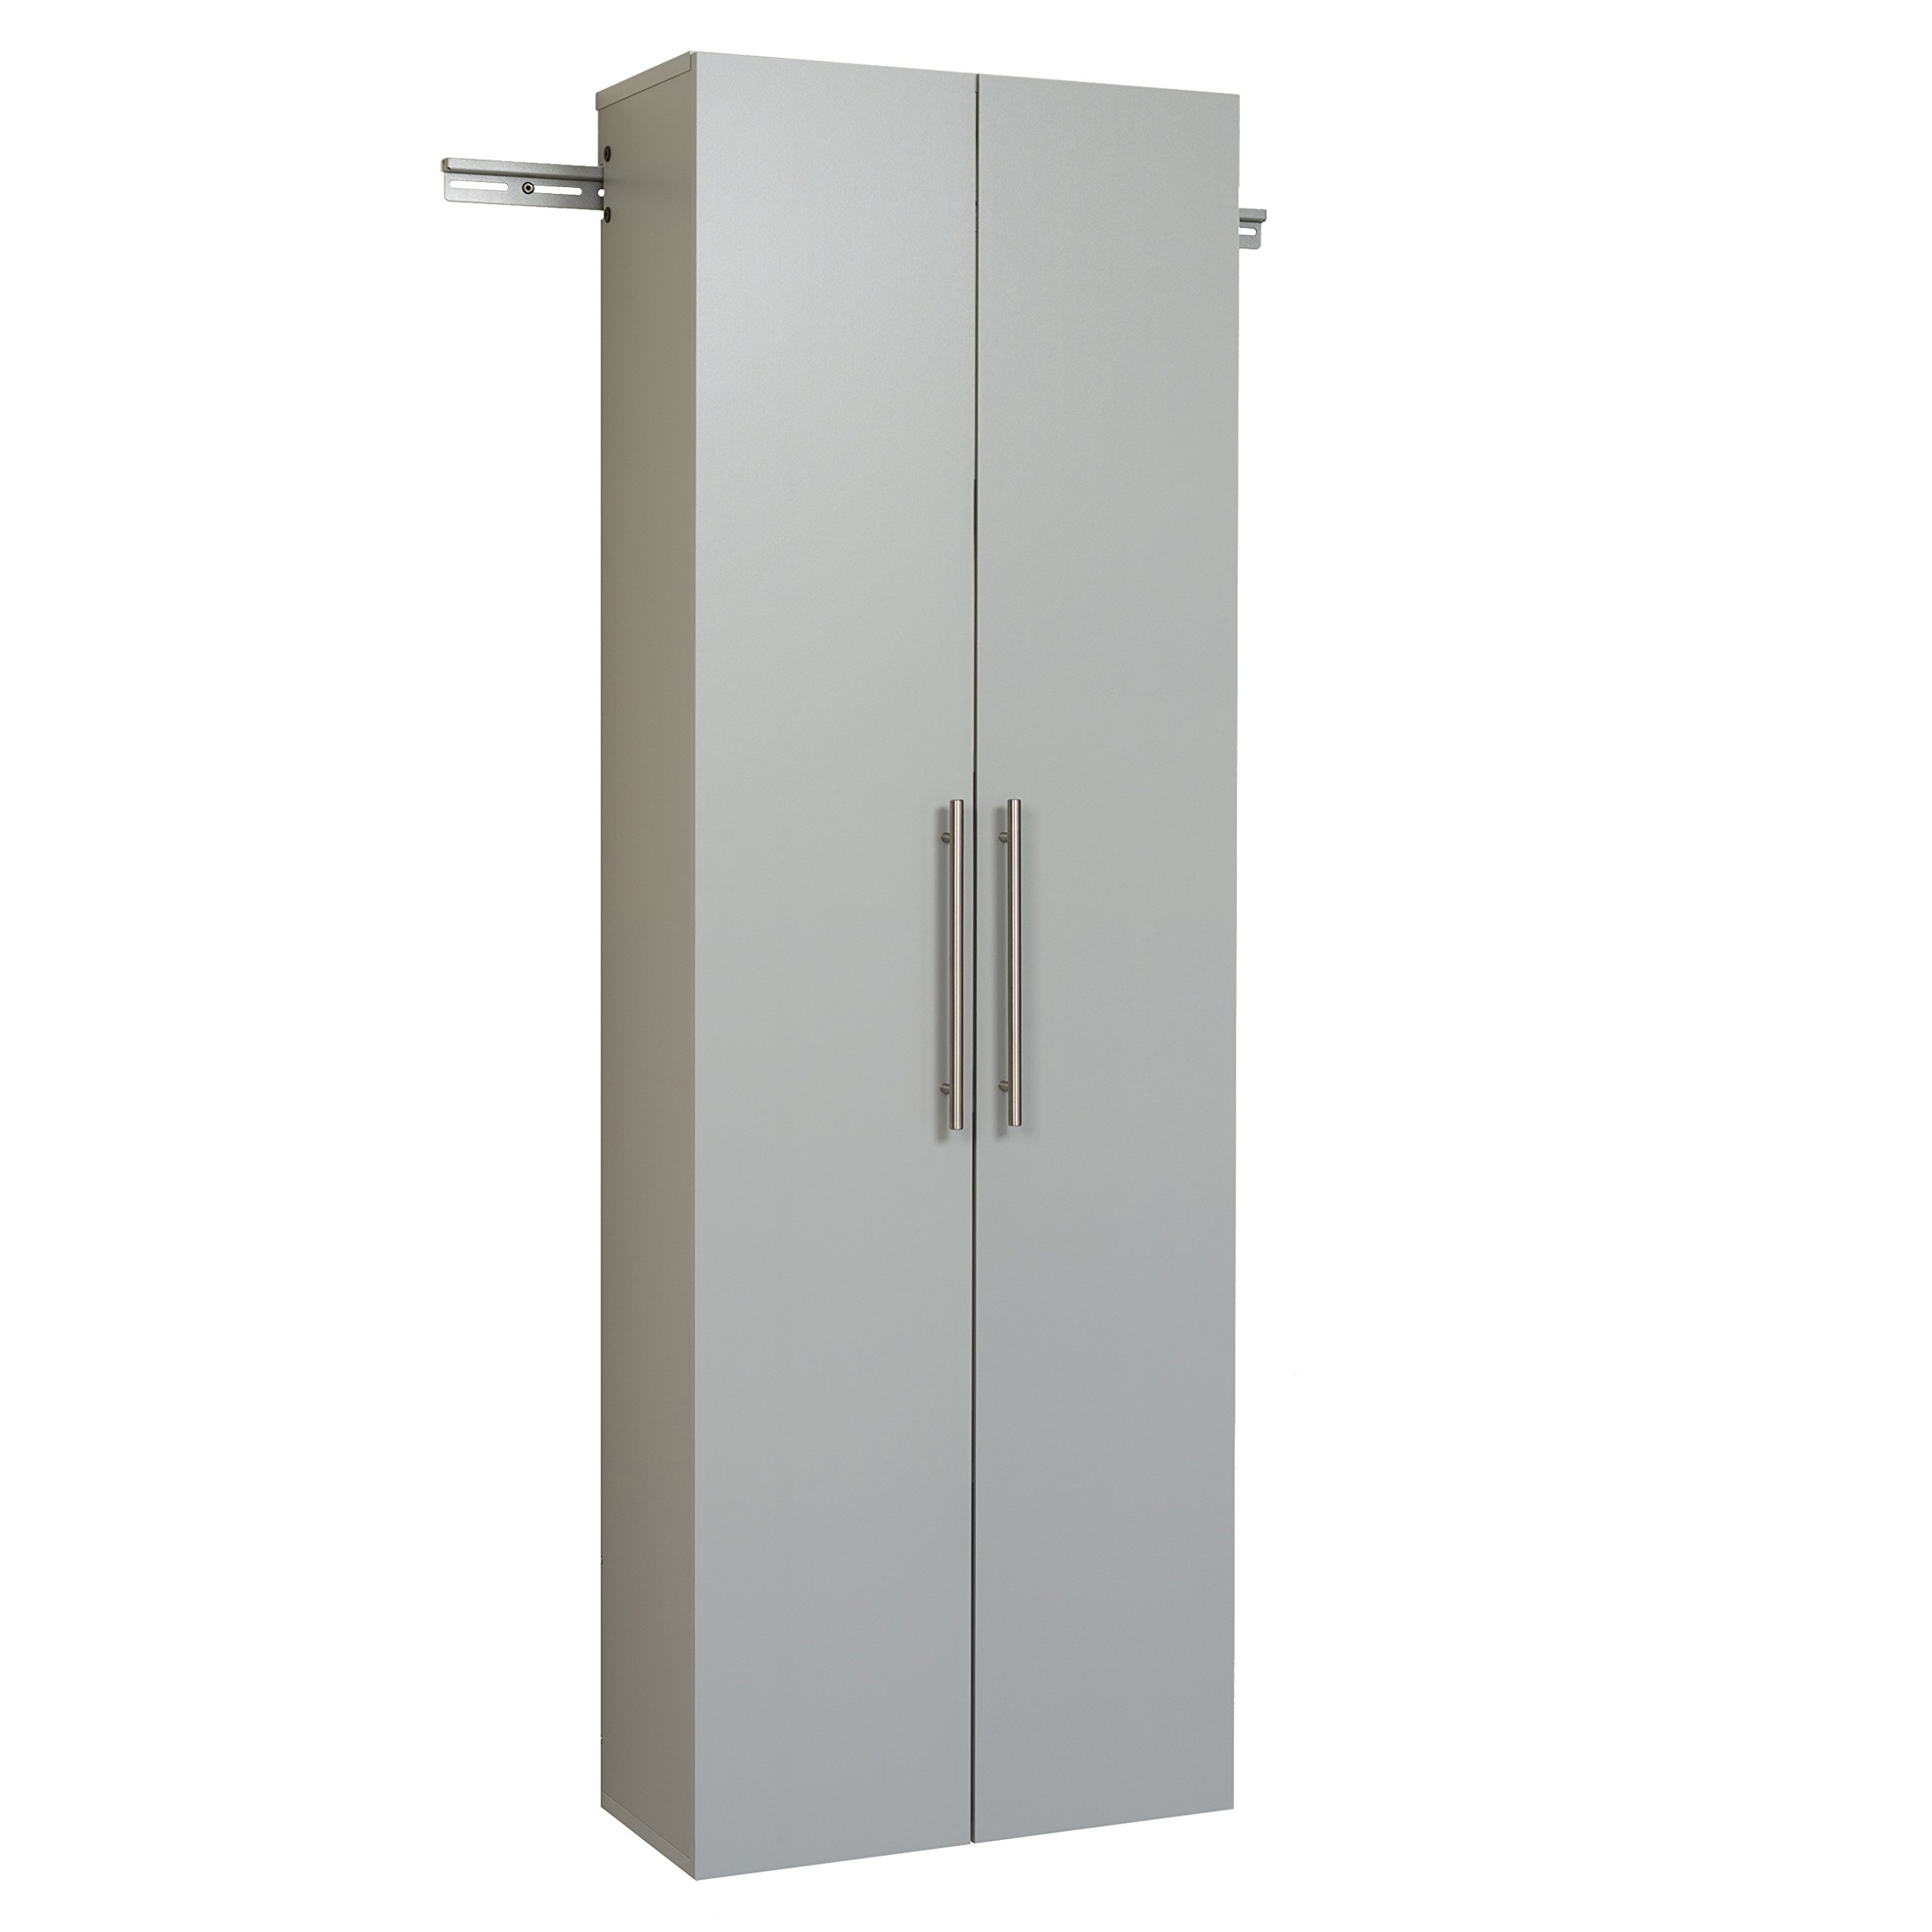 Prepac GSCW-0706-2K Hang-Ups Storage Cabinet, 24''/Large, Light Gray